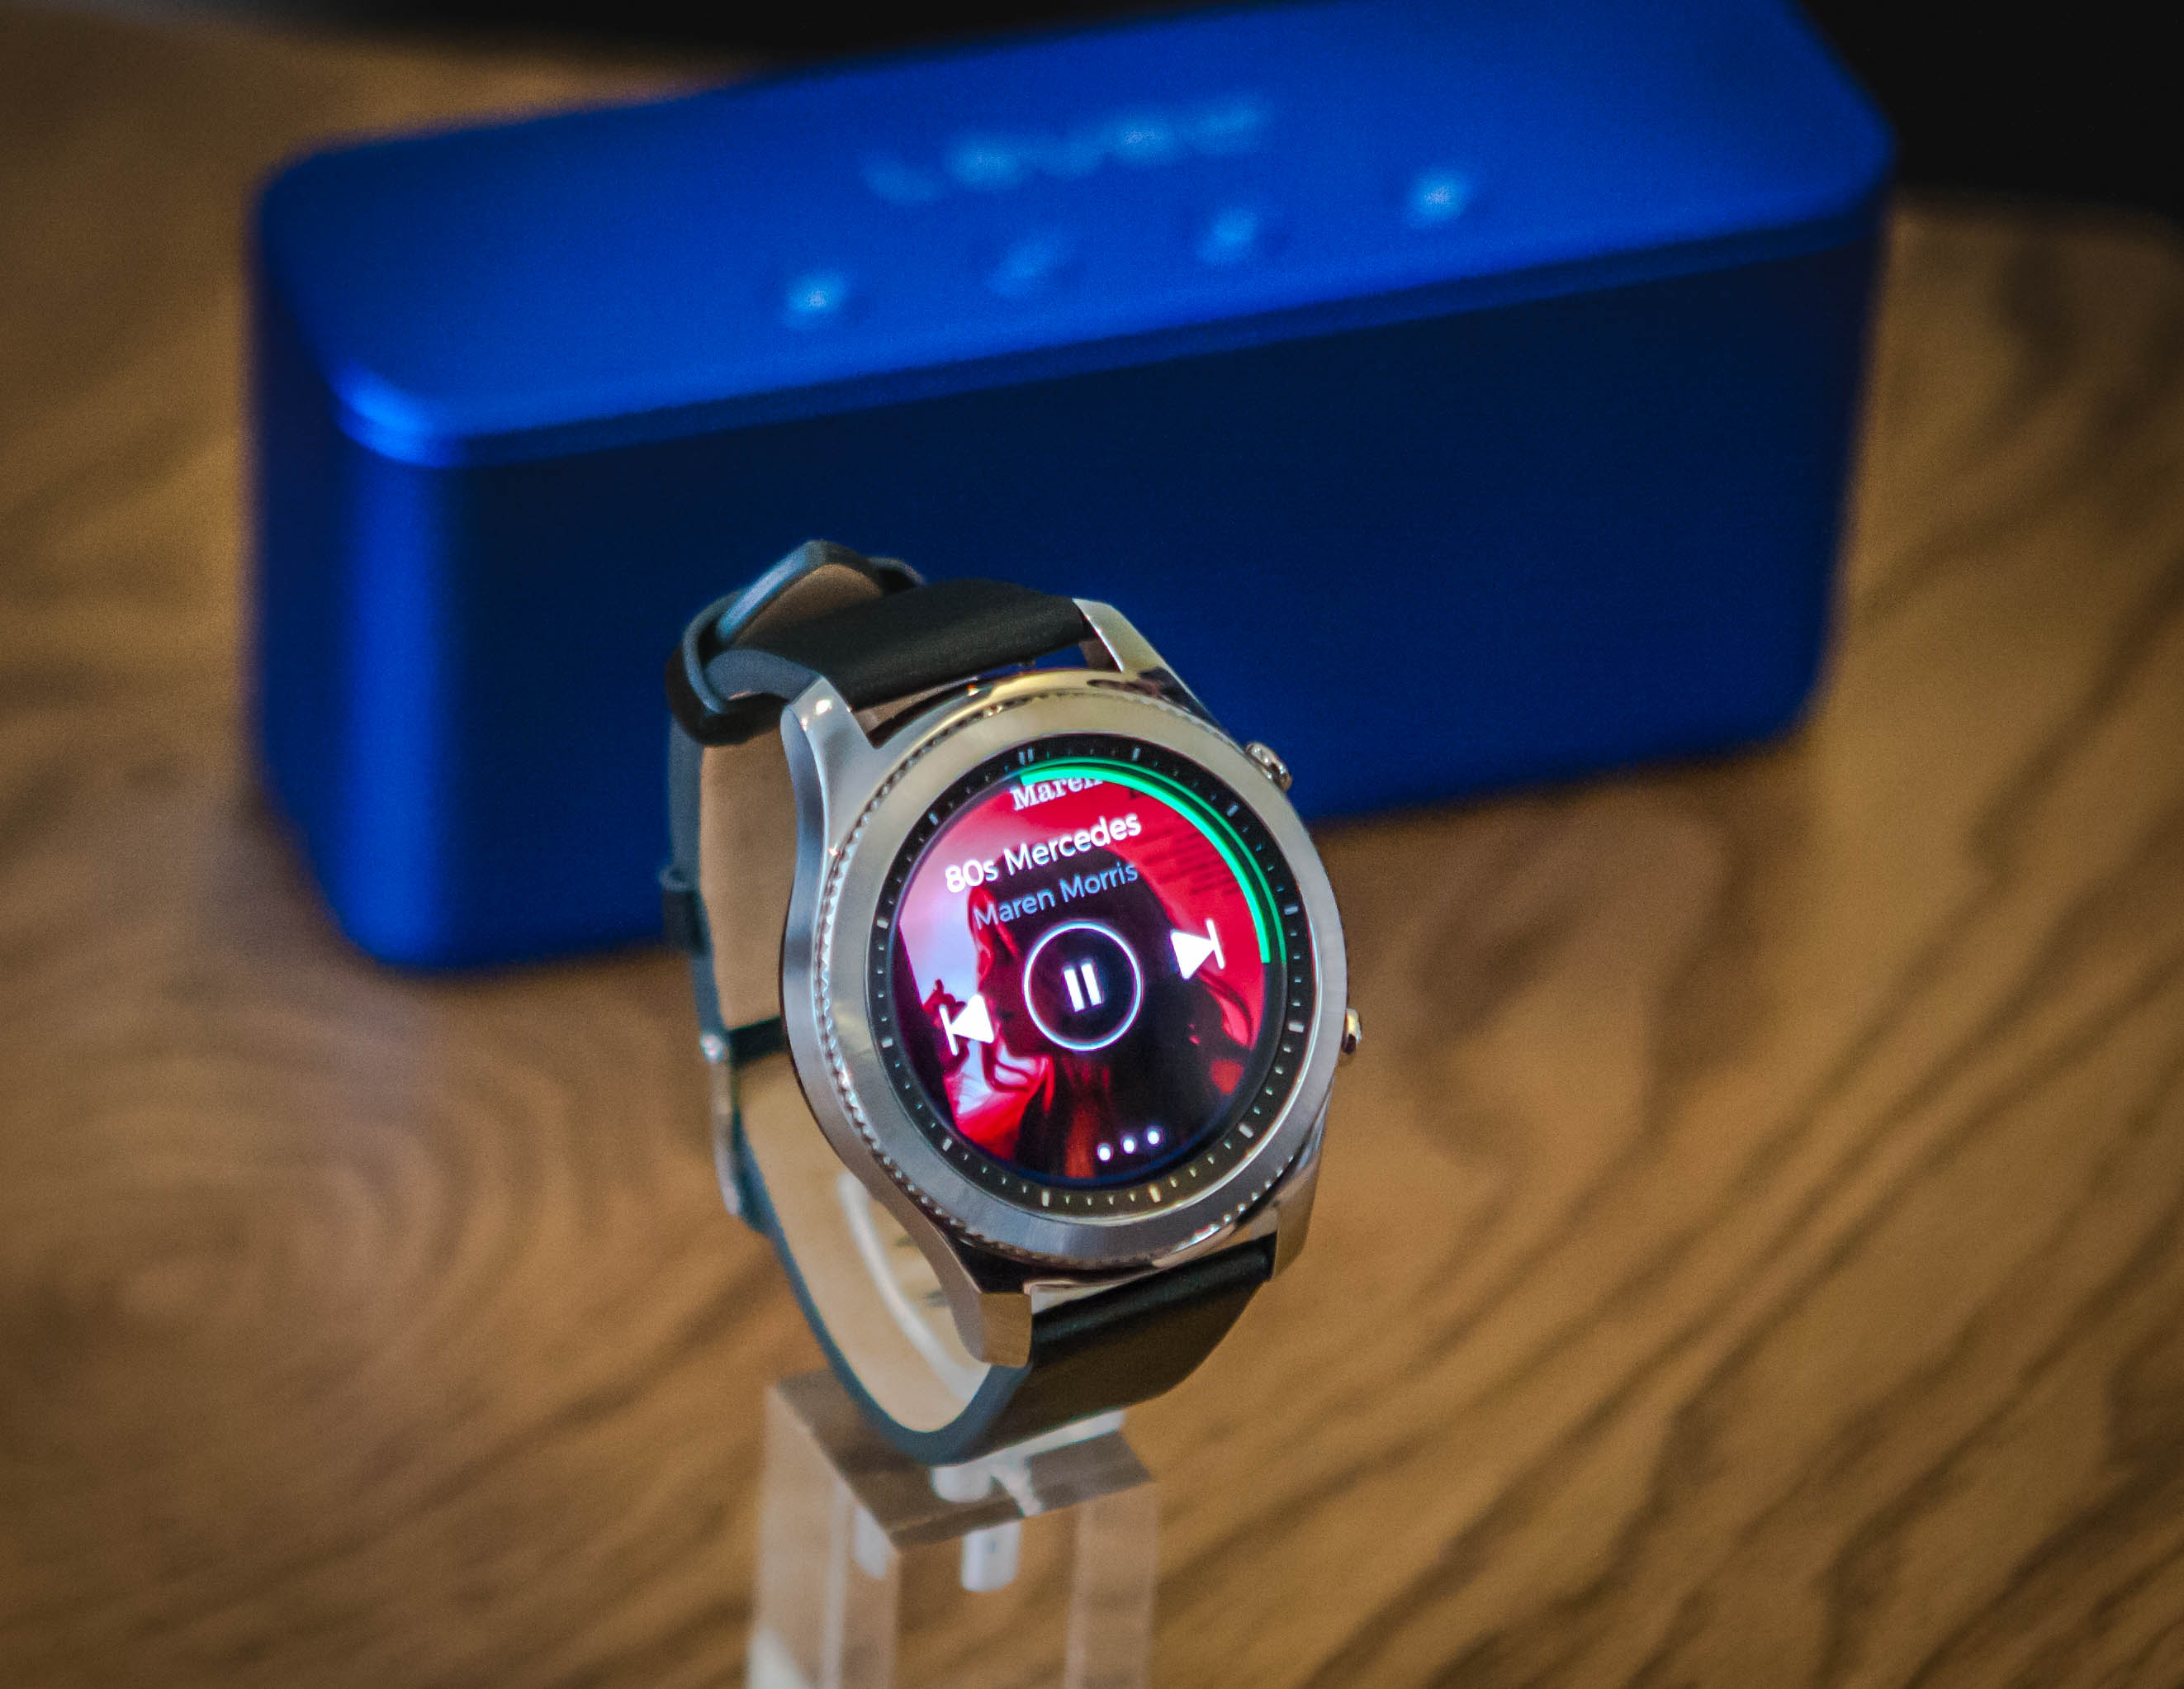 Playing Spotify music through the Samsung Gear S3 smartwatch